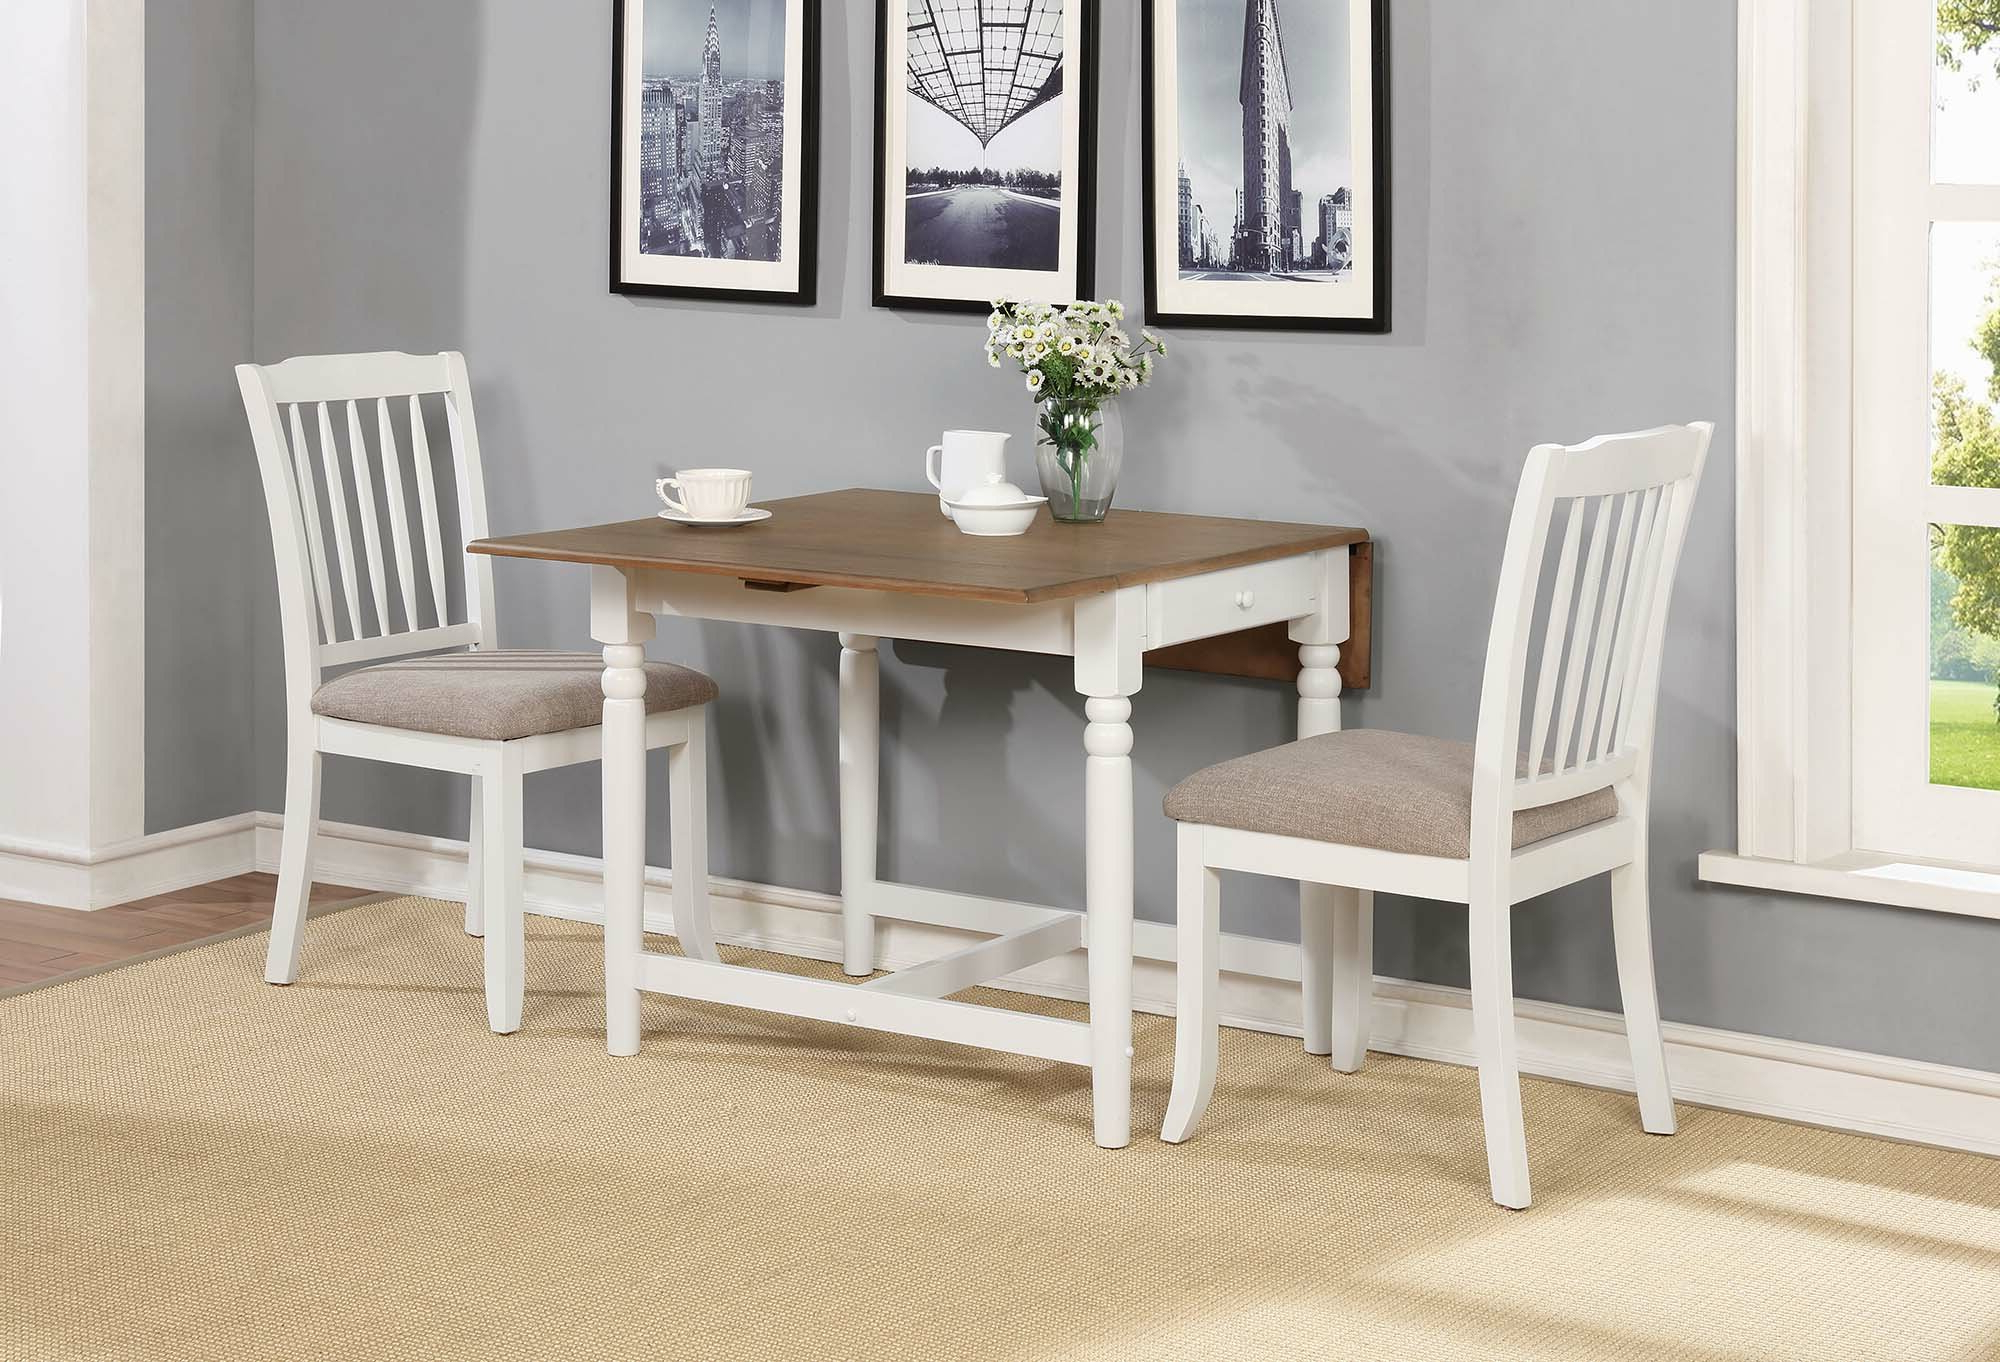 Wayfair Regarding Most Recent Wood Kitchen Dining Tables With Removable Center Leaf (View 20 of 30)